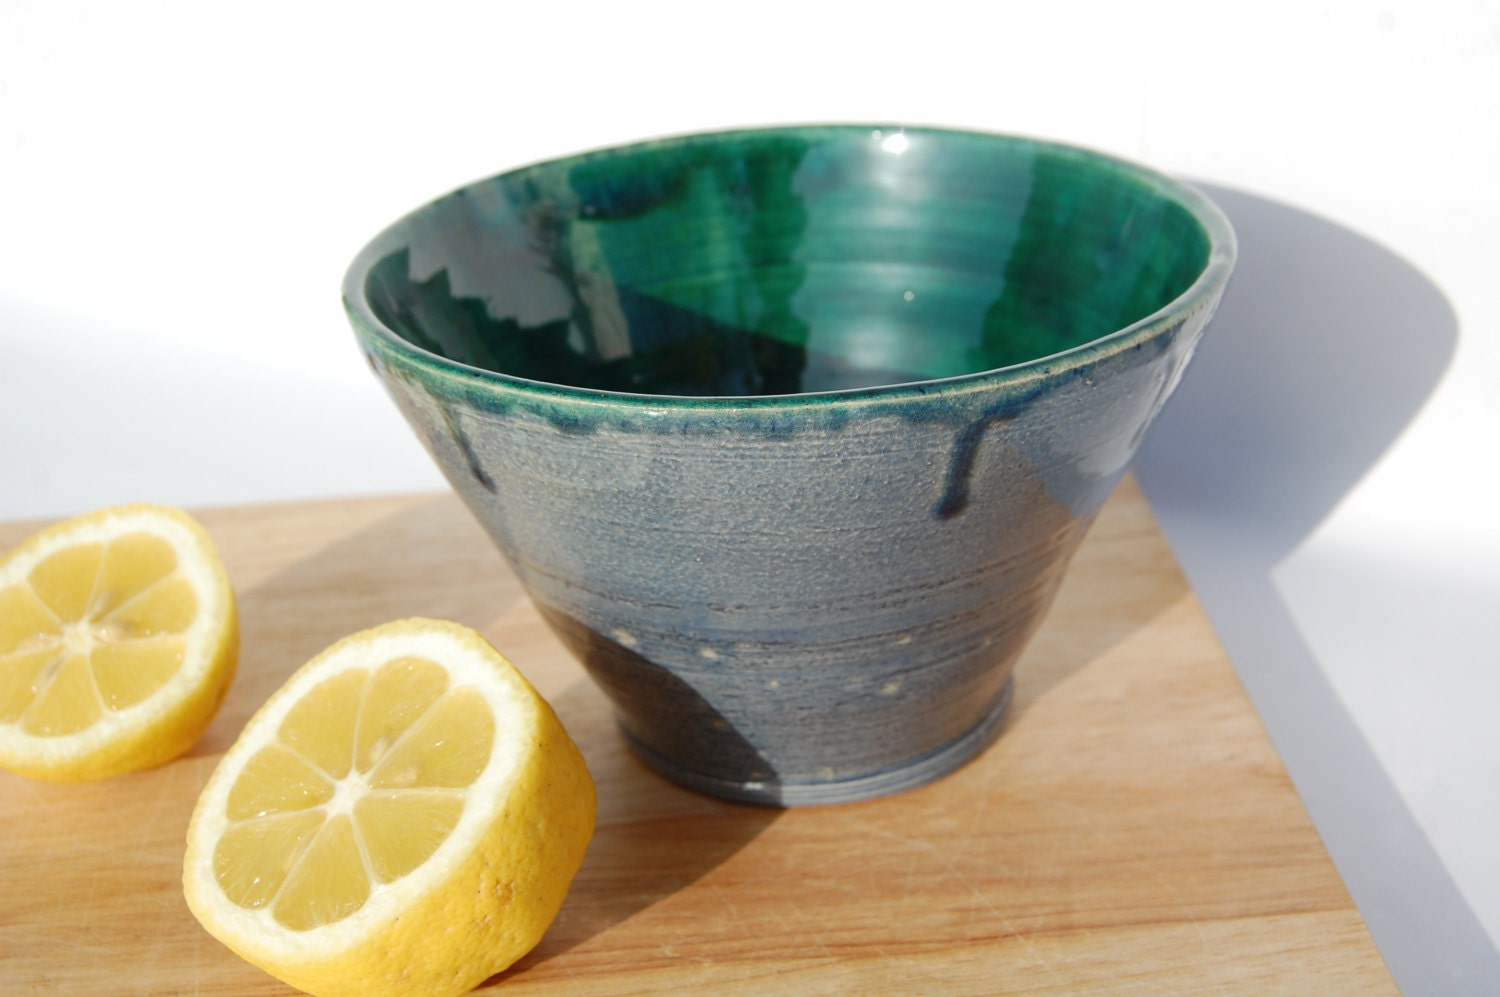 Teal and Blue Pottery Bowl made in UK, Useful in the Home or for Outdoor Eating, House warming Gift